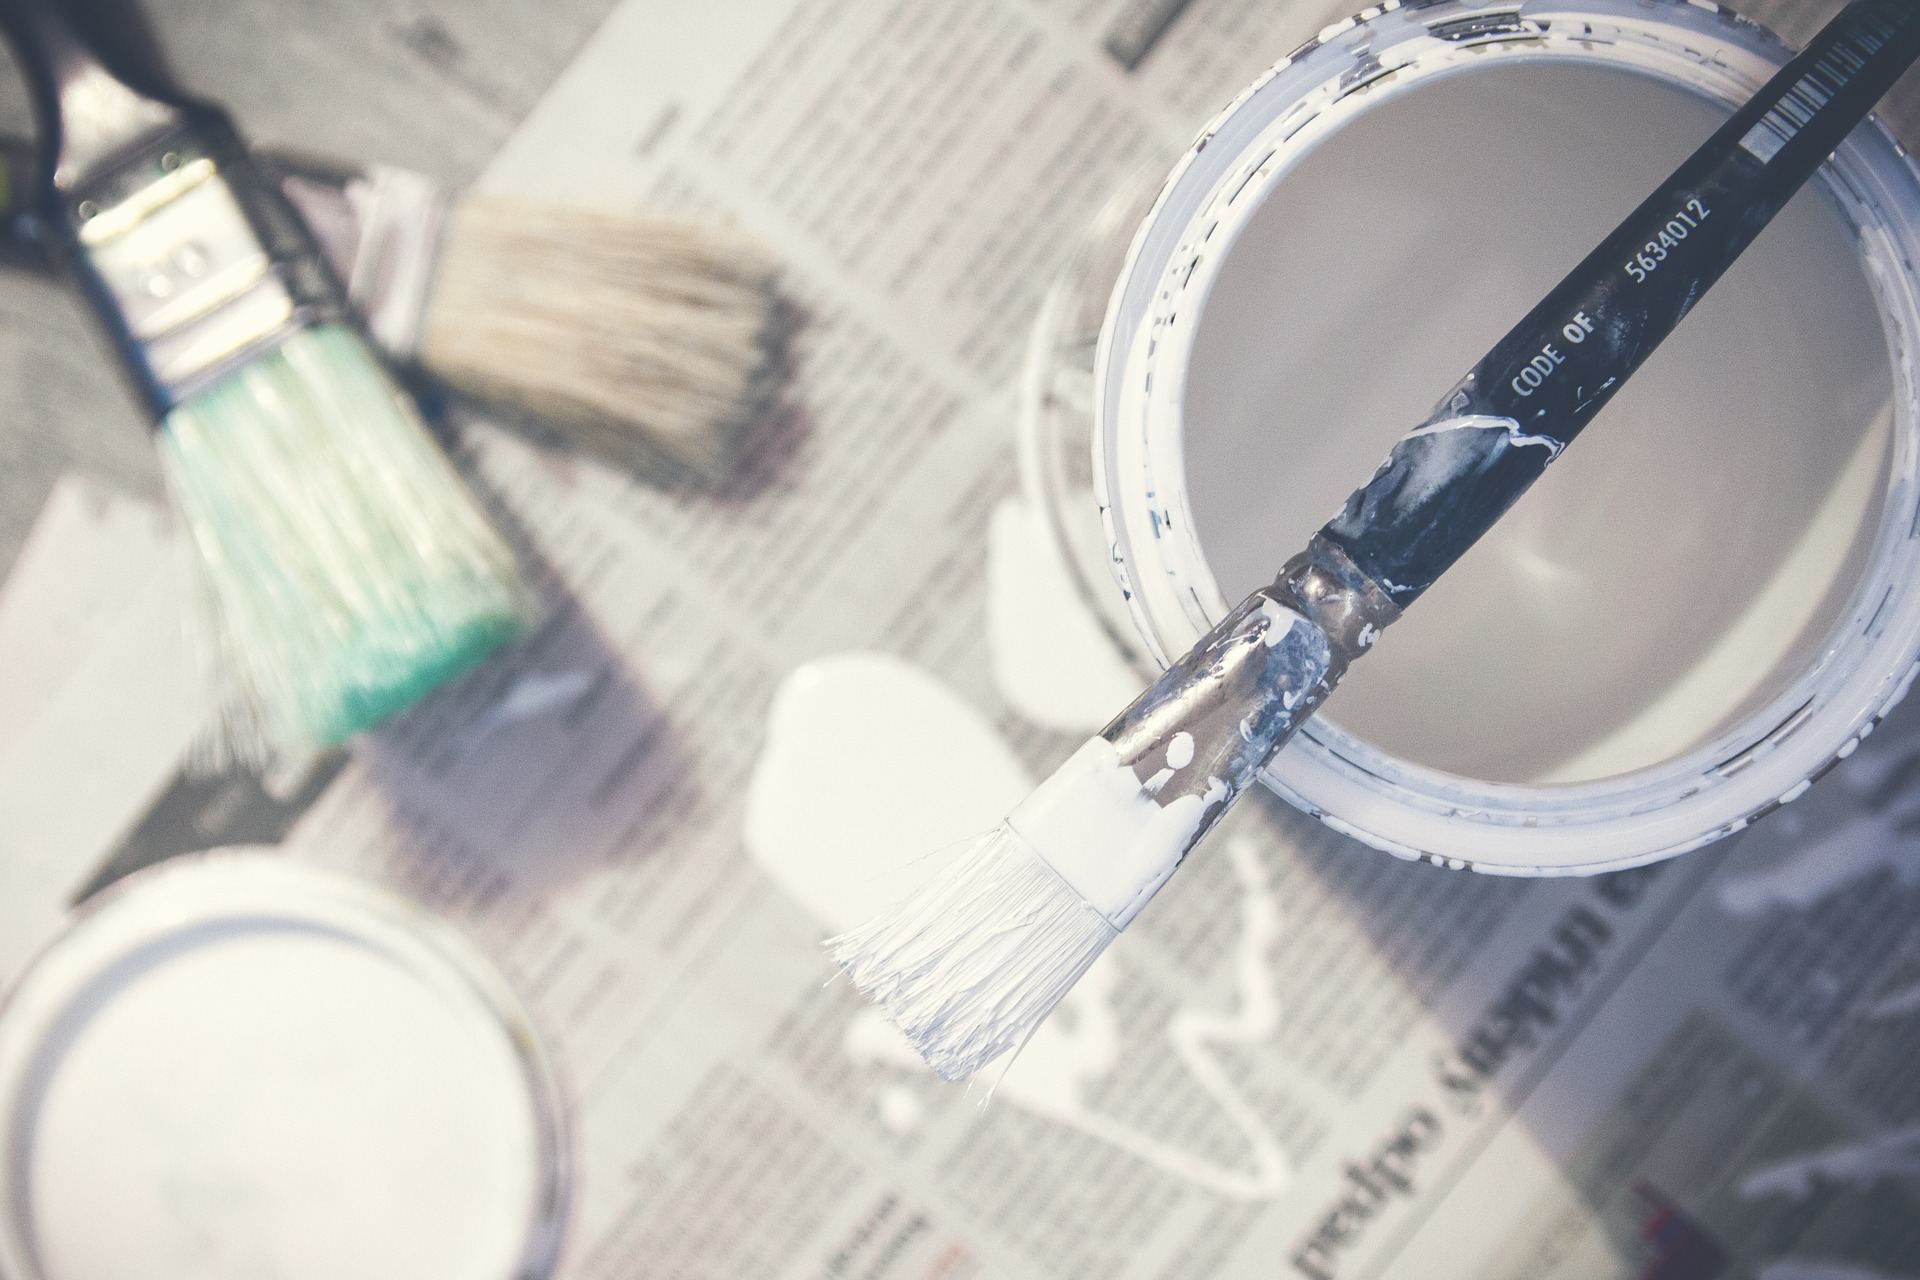 Use paint to update a room. That's one way to achieve affordable redecorating.